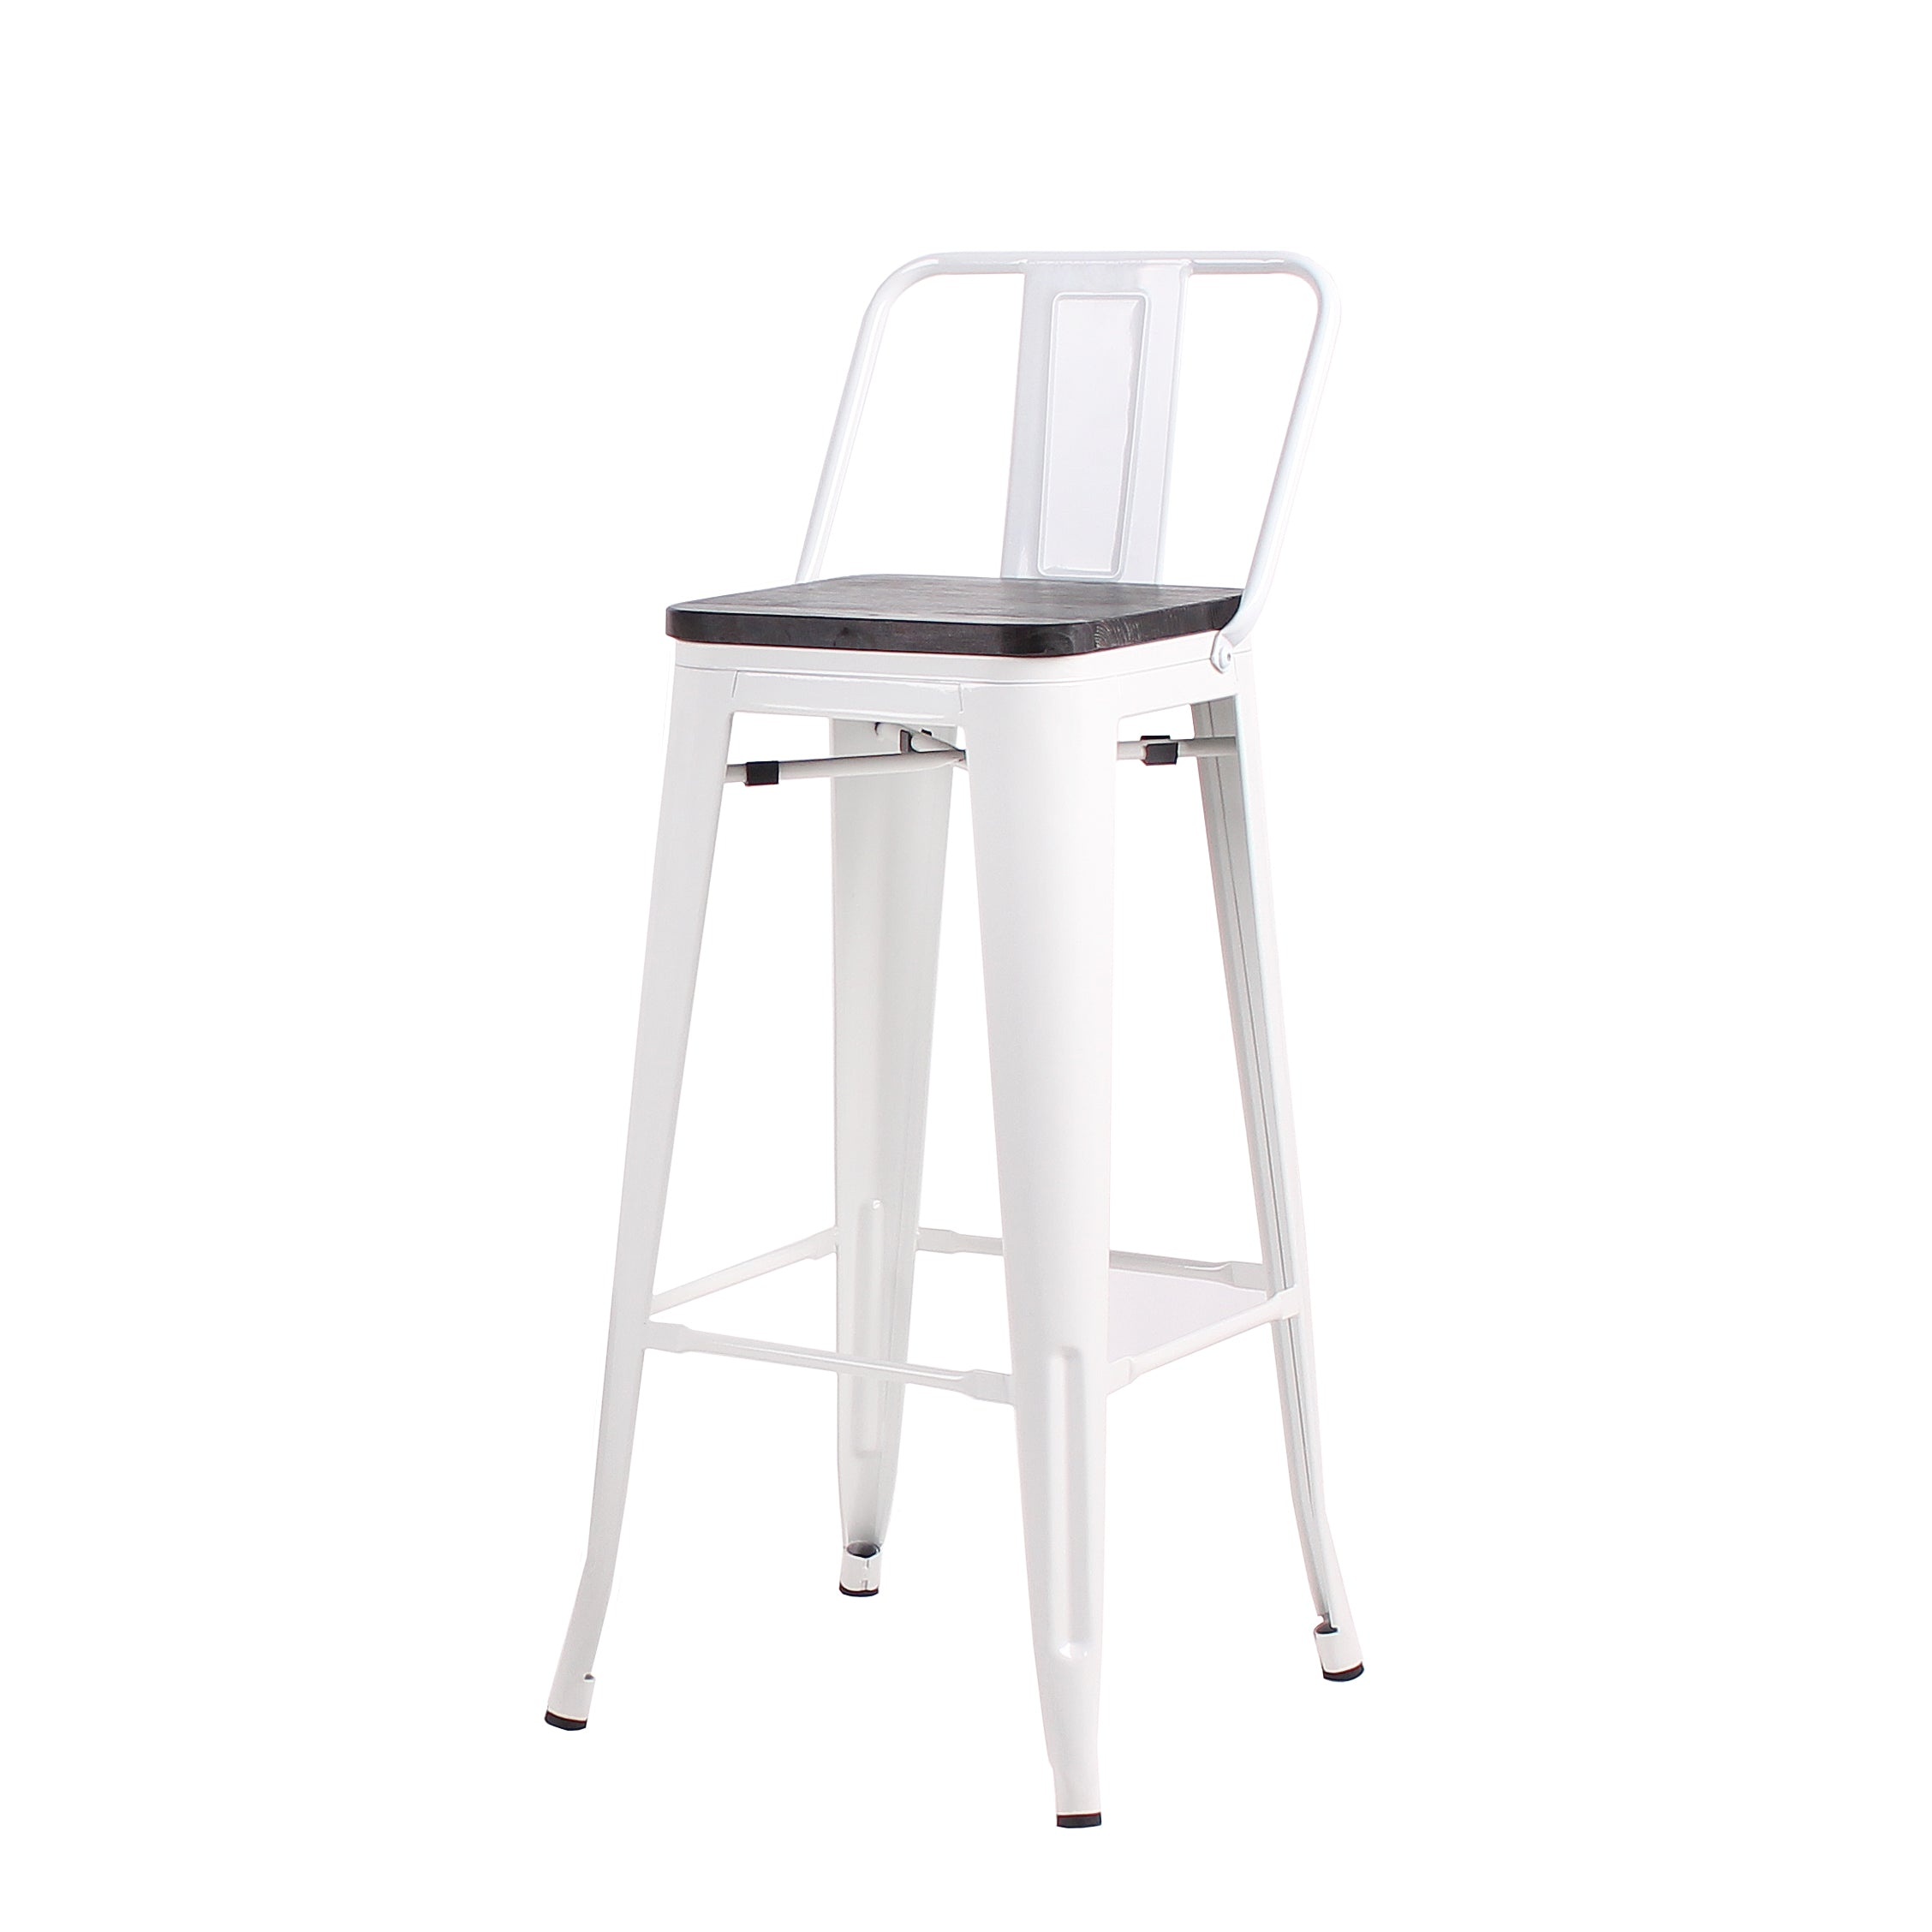 Buschman Set of 4 White Wooden Seat 24 Inch Counter Height Metal Bar Stools with Medium Back, Indoor/Outdoor